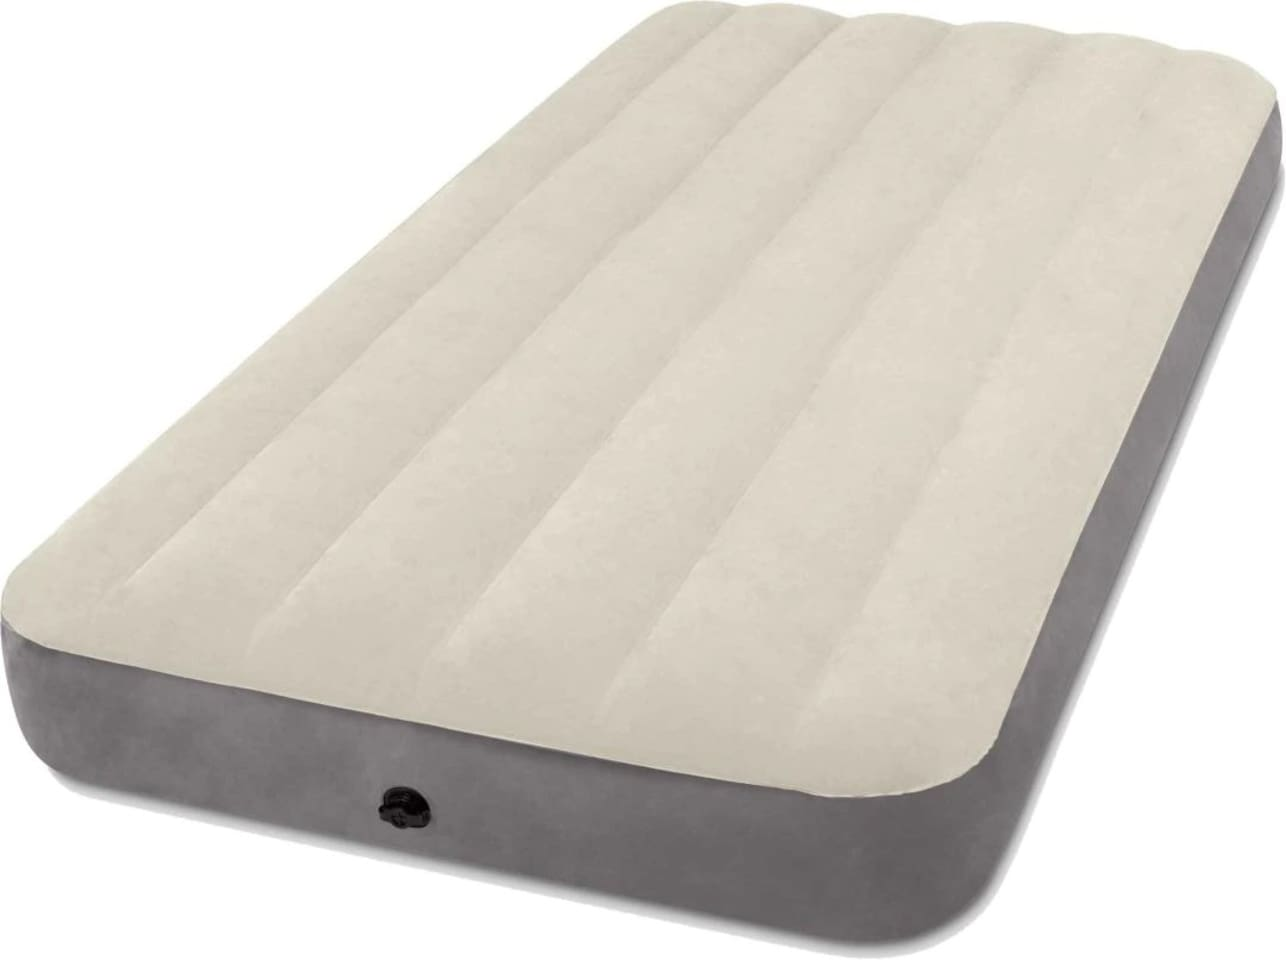 An air mattress will be provided for R&R, this is not an actual picture of air mattress